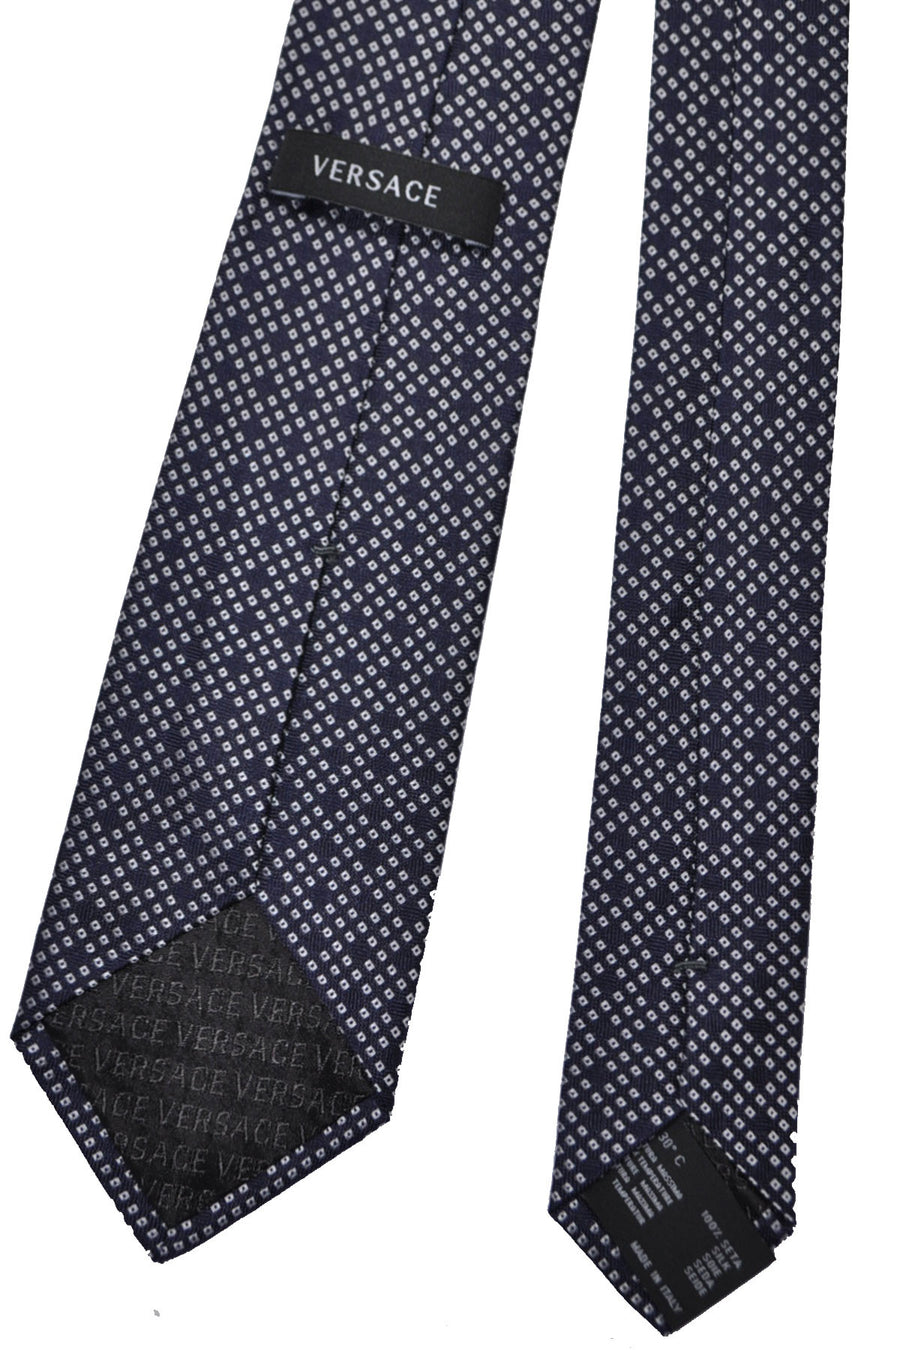 Versace Tie Navy Silver Mini Diamonds Design SALE